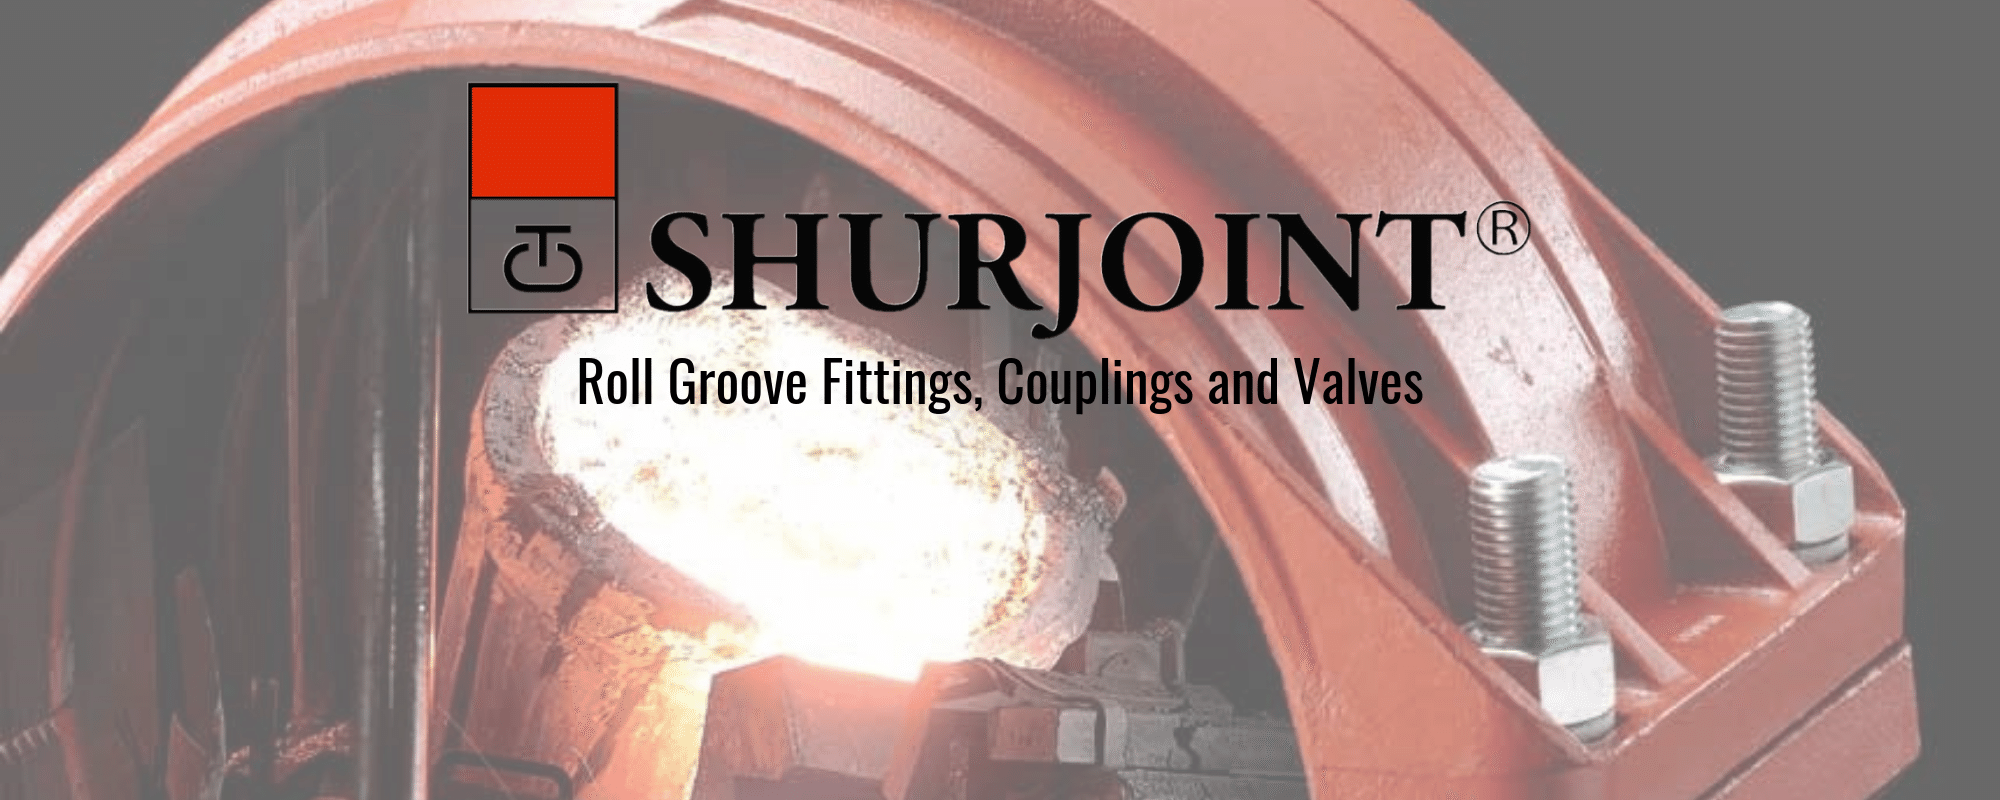 Shurjoint product page header